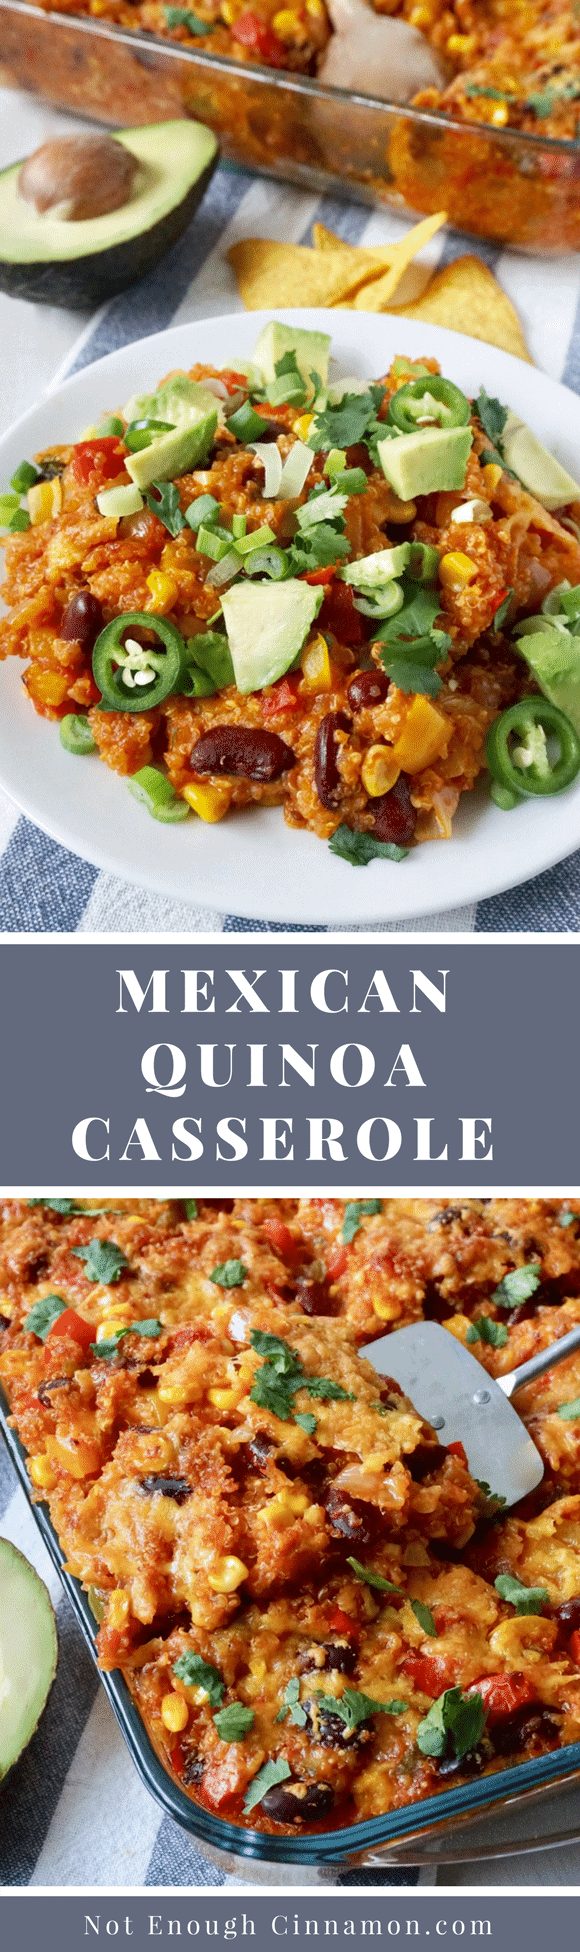 Mexican Quinoa Casserole ( Healthy & Gluten-free) | An easy + healthy quinoa casserole with all your favorite Mexican flavors. Meatless and high in protein, this easy casserole is a nutritional powerhouse! It's naturally gluten free - and freezer friendly too. #casserolerecipes, #quinoarecipes, #mexicanrecipes, #easydinnerrecipes, #cleaneatingrecipes